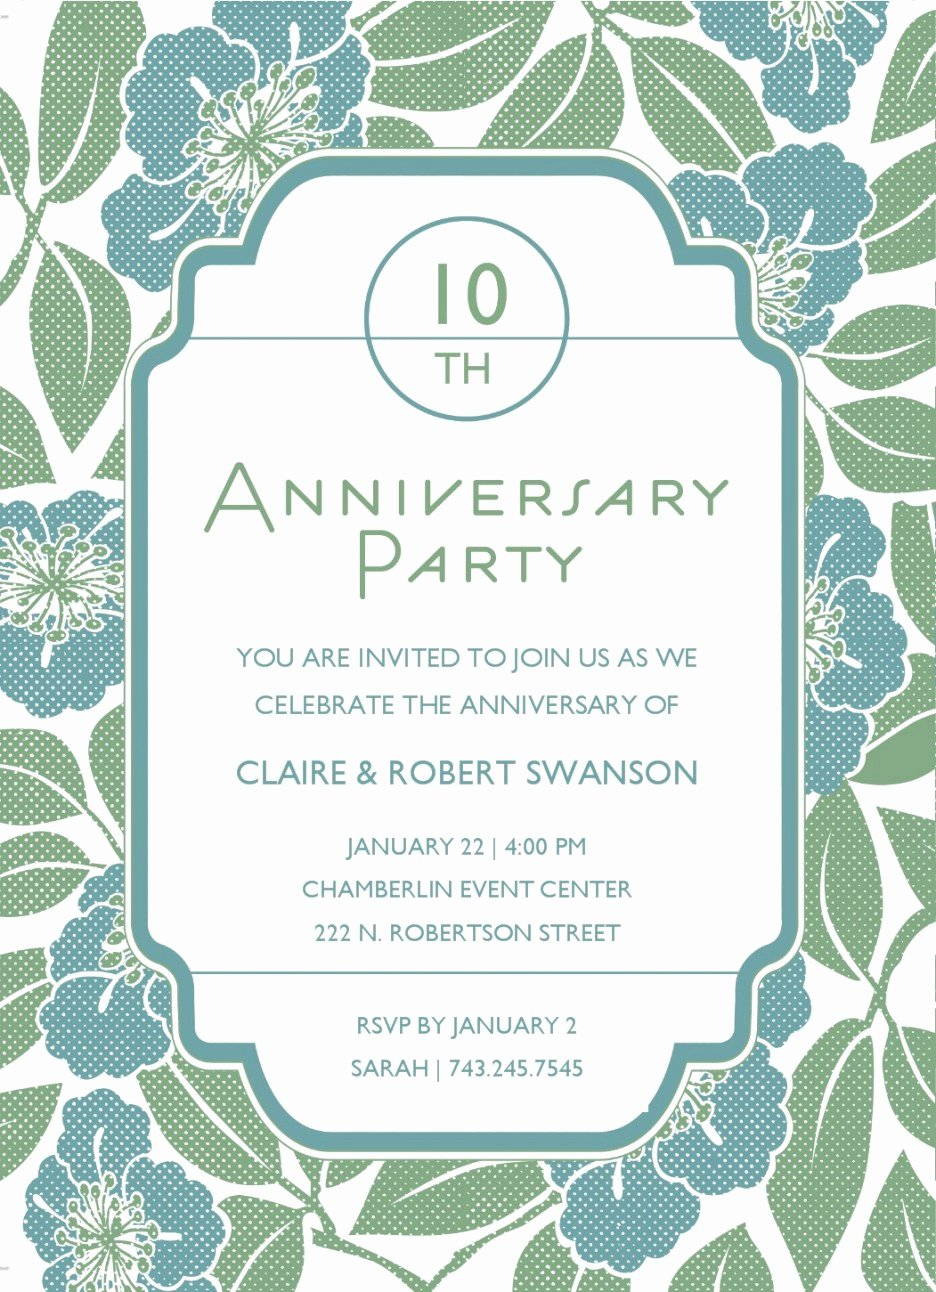 Wedding Anniversary Invitation Template Lovely 10th Anniversary Party Invitation with Floral Template